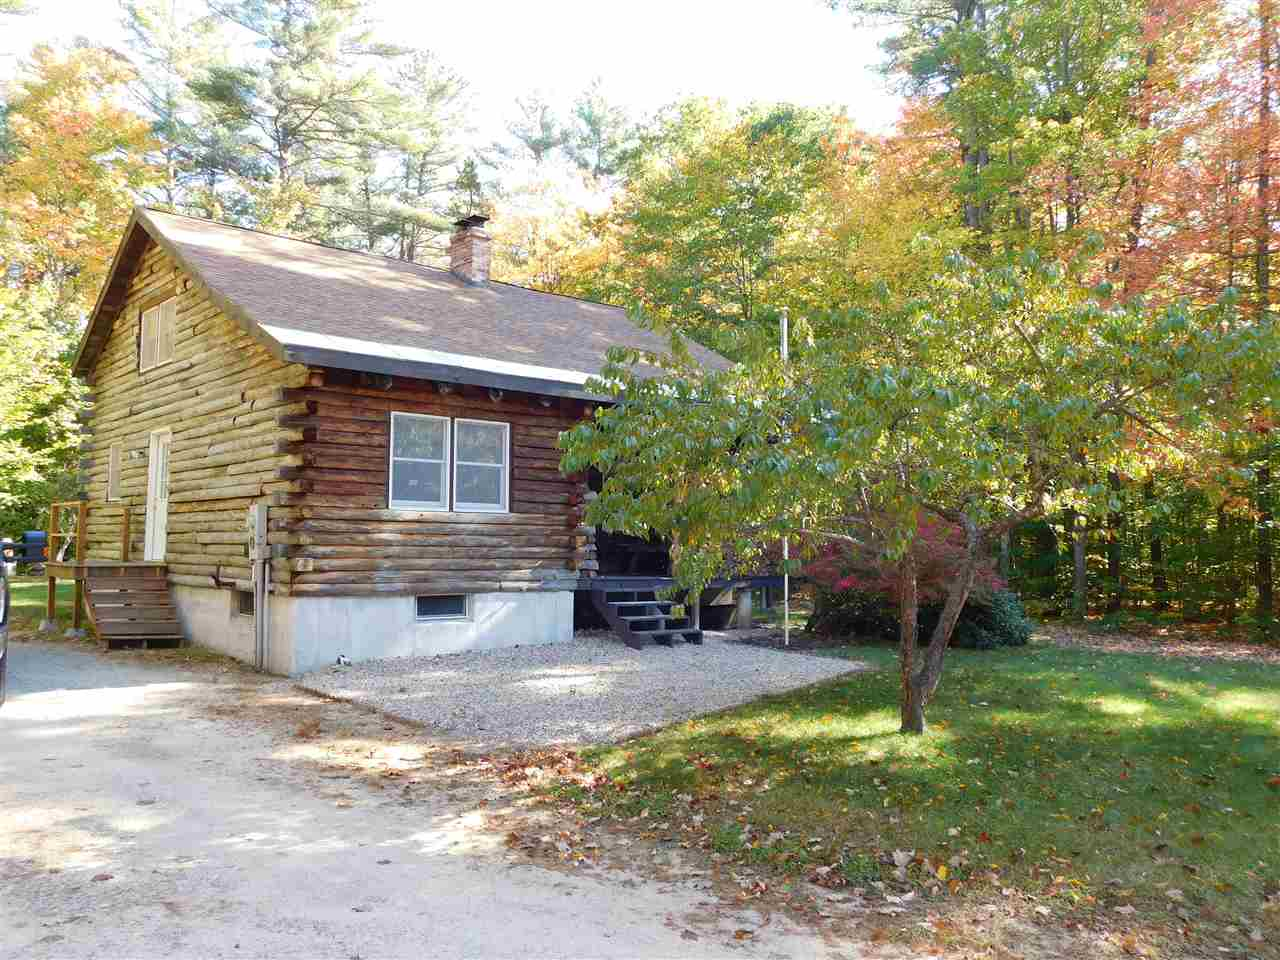 VILLAGE OF EAST WAKEFIELD IN TOWN OF WAKEFIELD NH Homes for sale